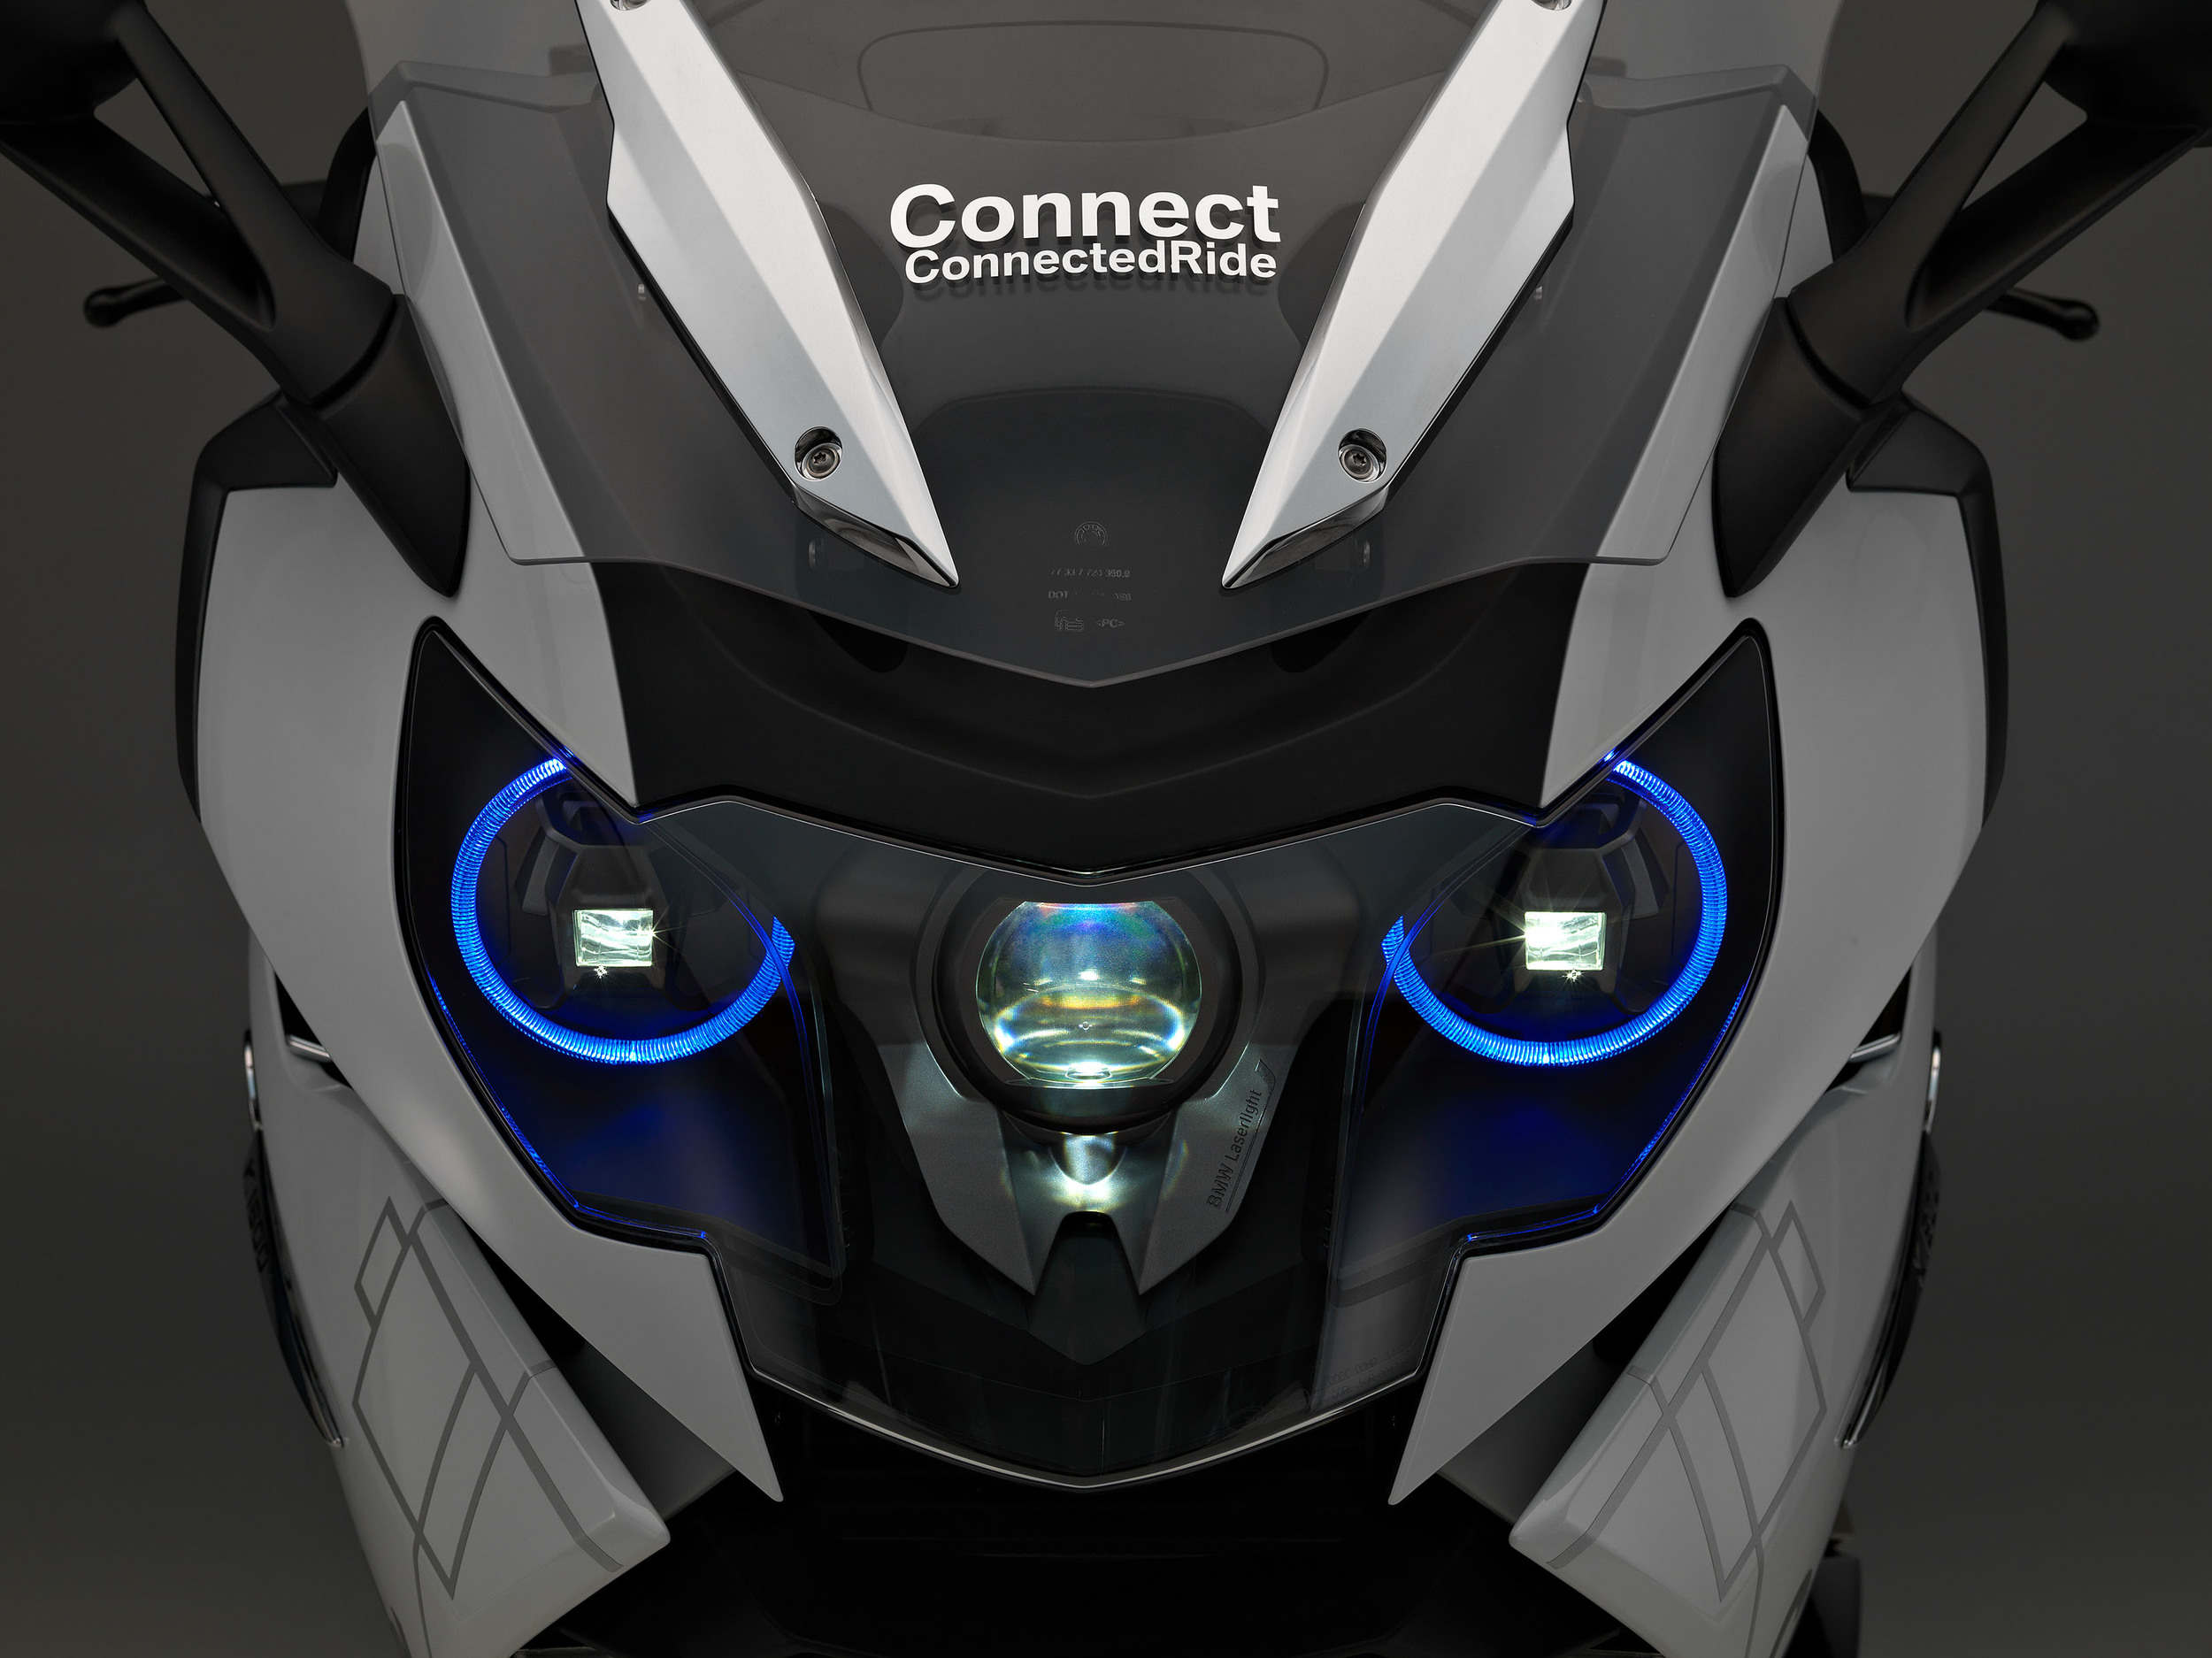 BMW Bringing Laser Headlight Technology to Motorcycles